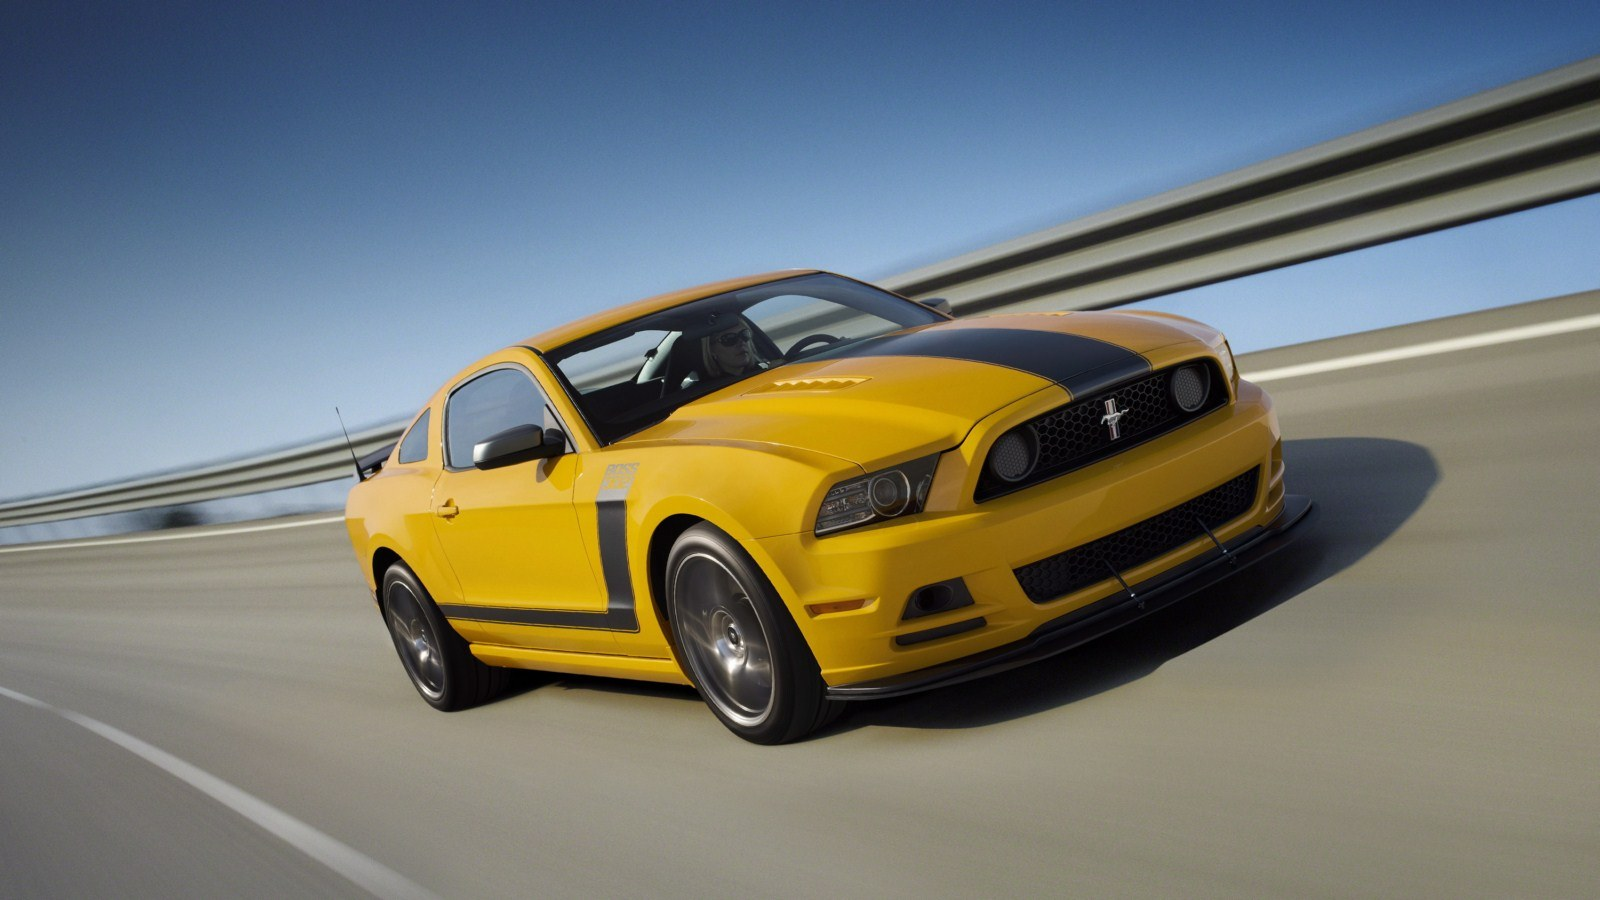 Ford Mustang Free Wallpaper For Android